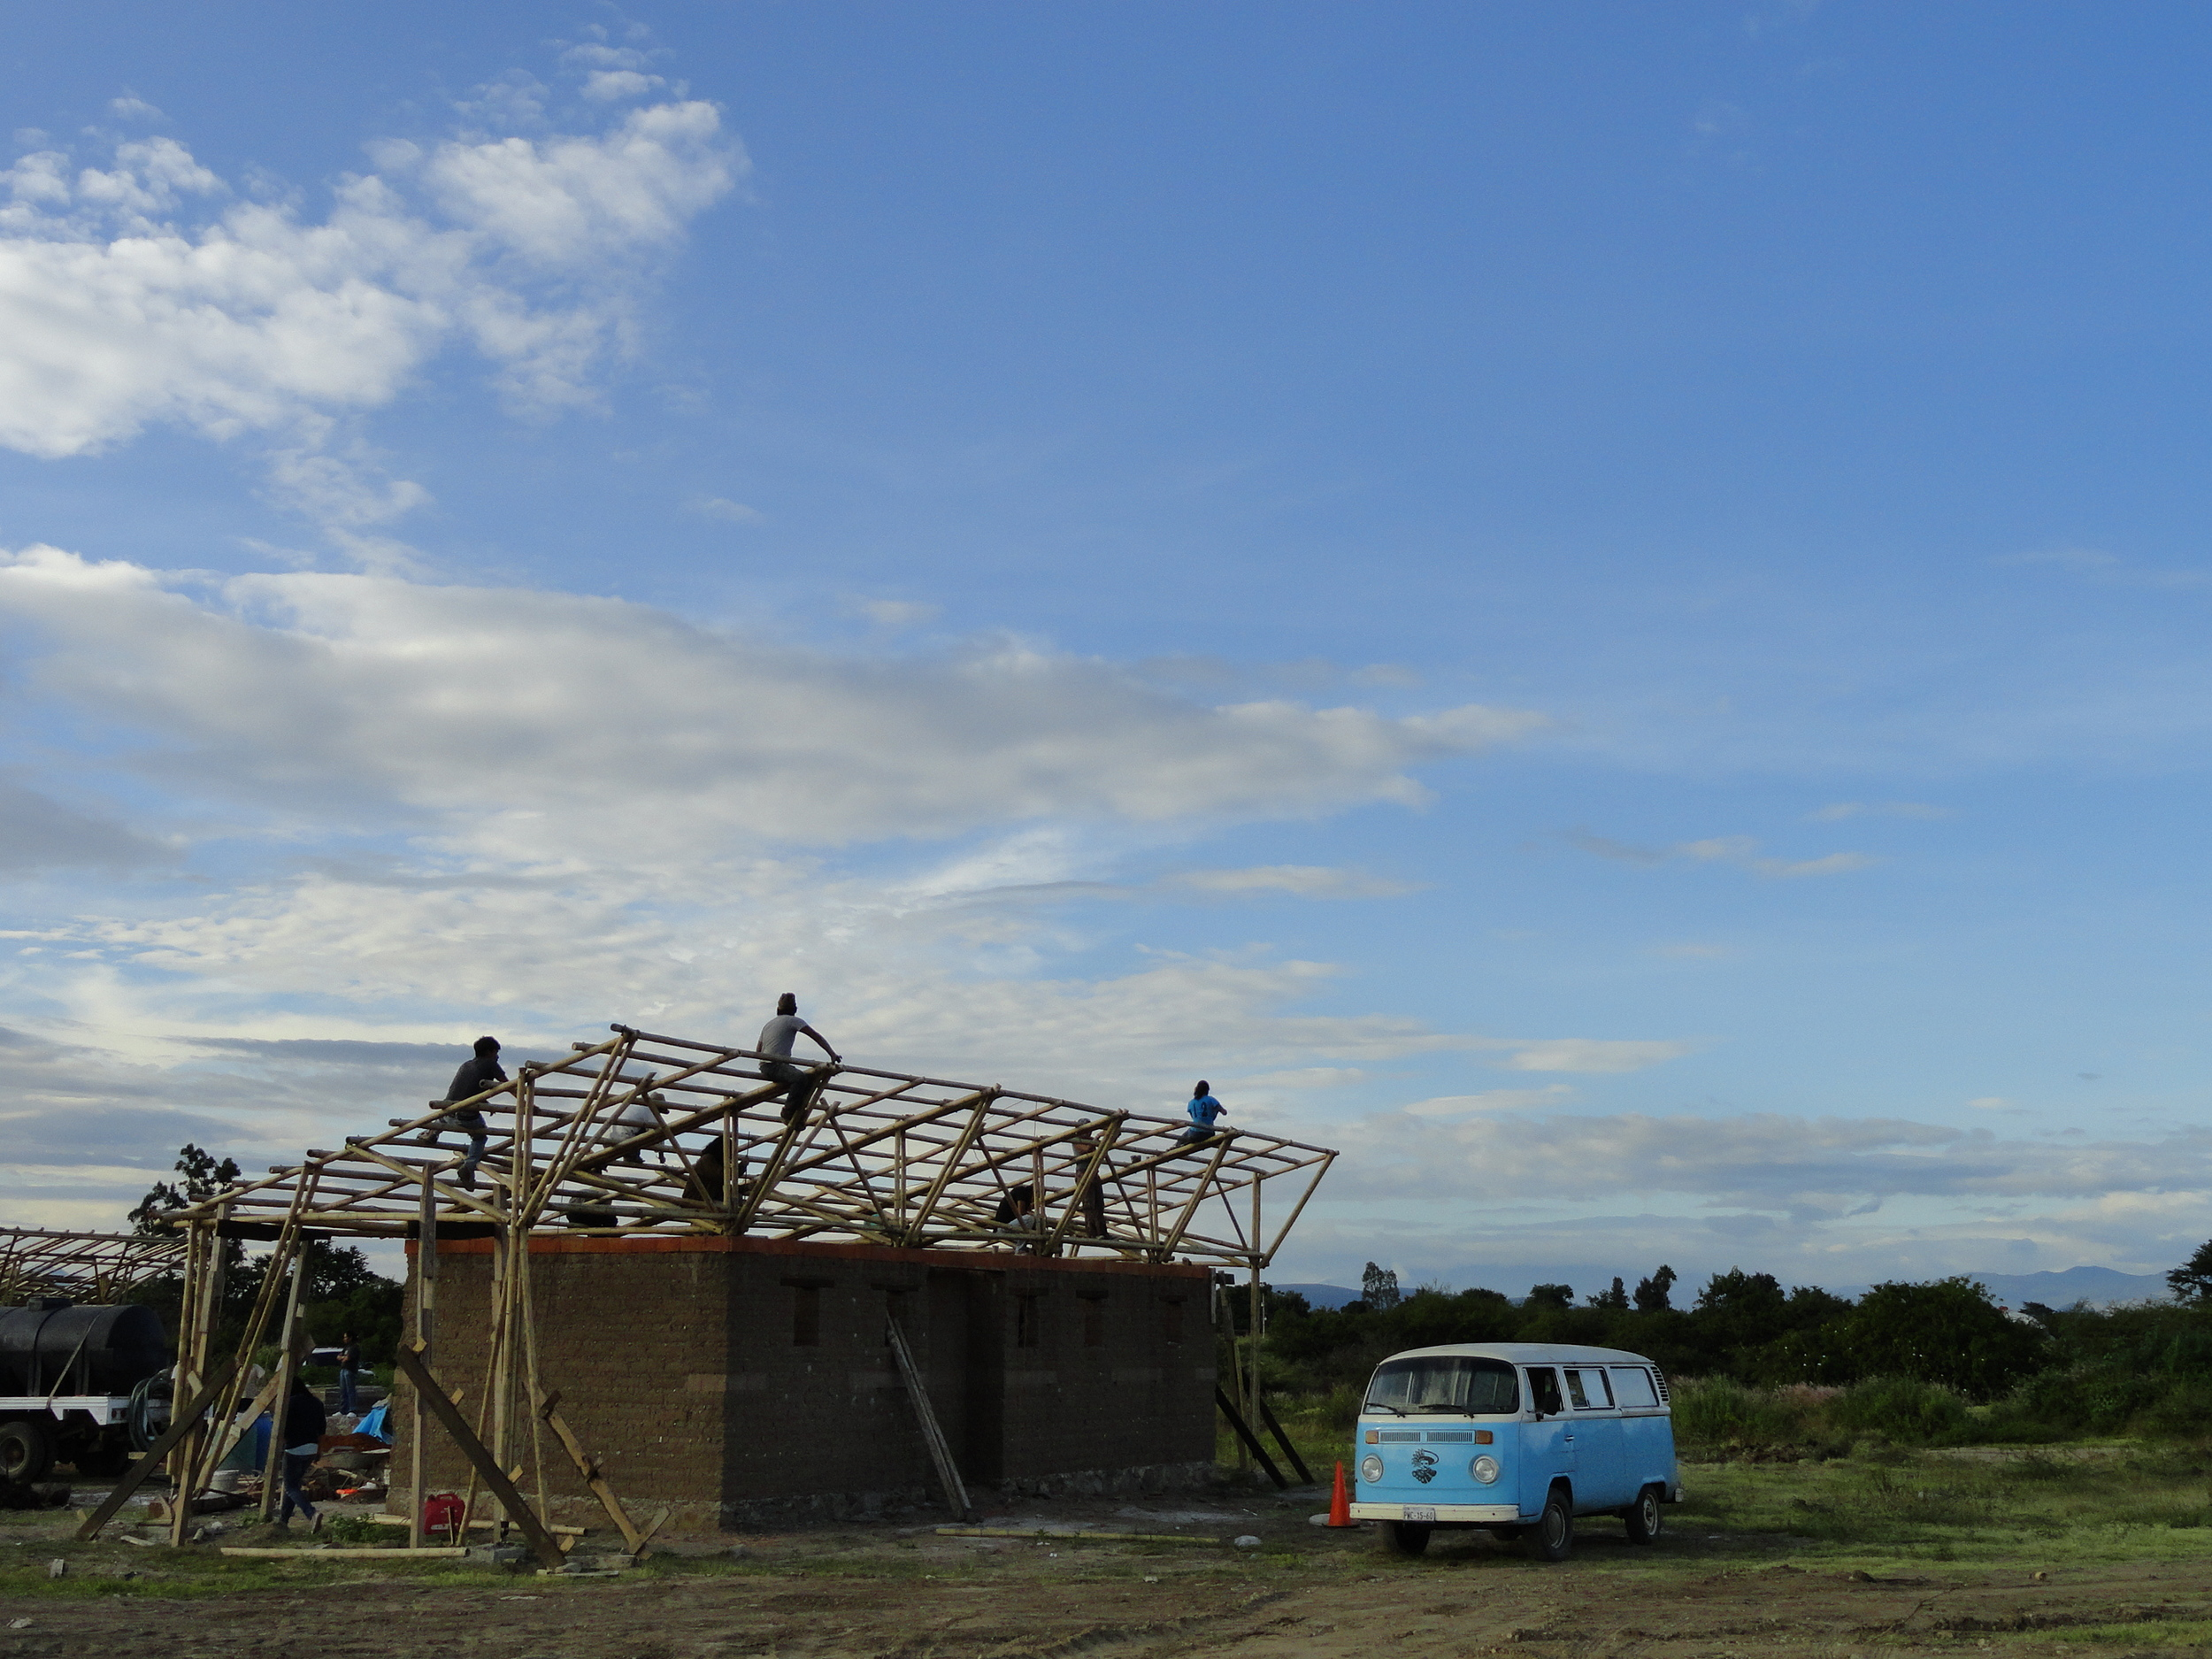 BAMBOO ROOF STRUCTURE / GAME NIKE CHANGERS - SAN PEDRO APOSTOL, MEXICO